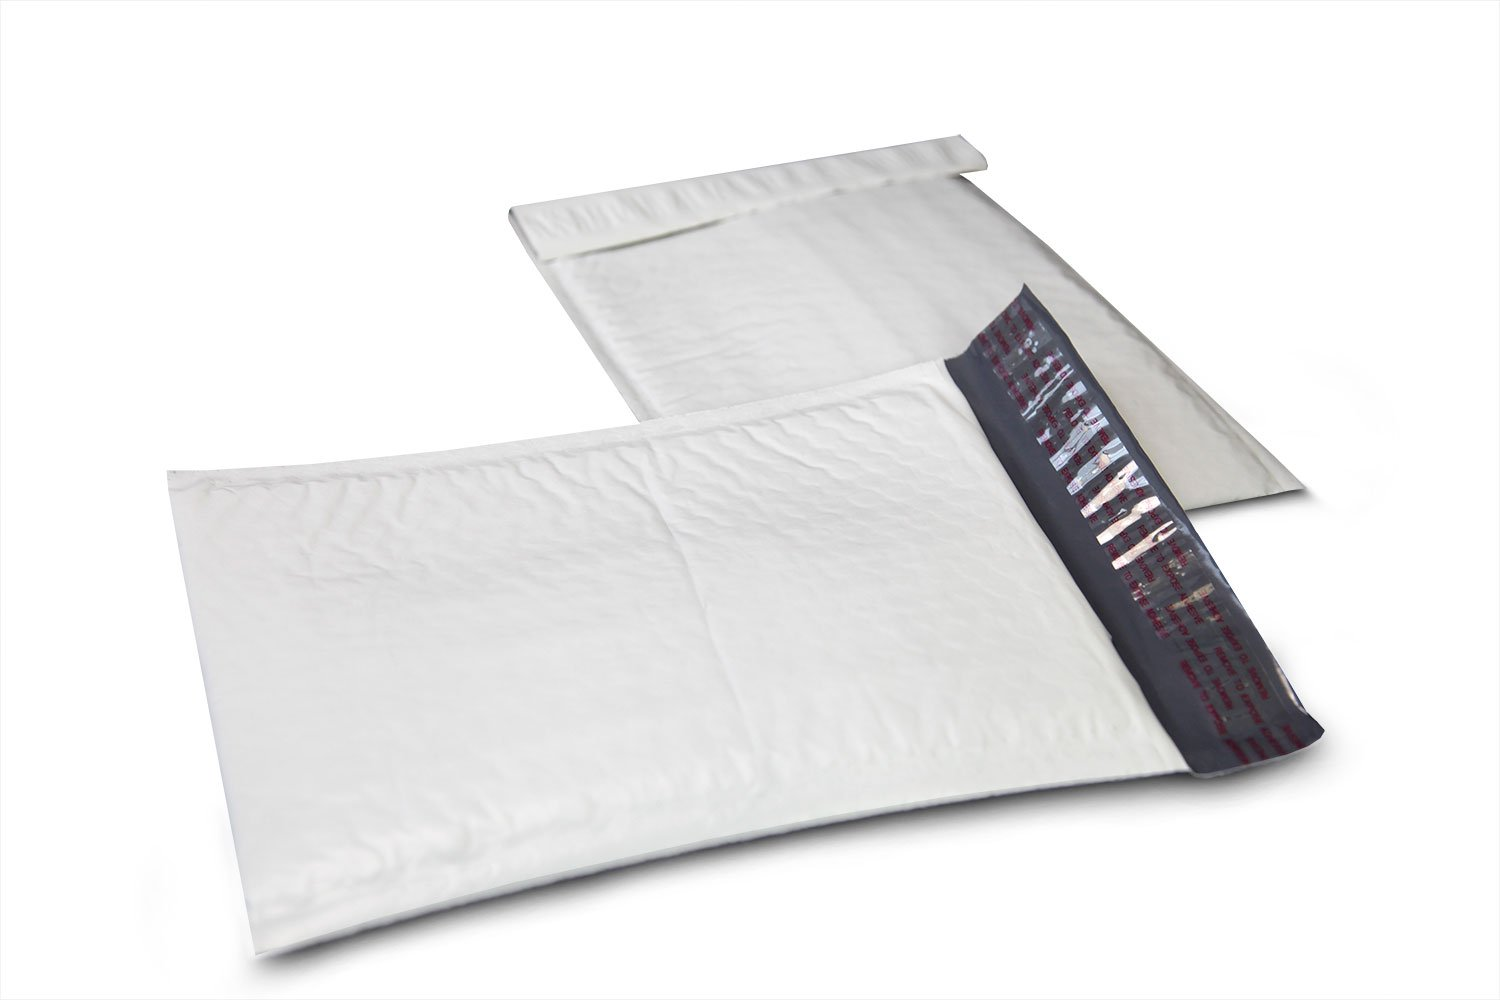 Empire Mailers - 200 (#000) 4 x 8 White Poly Bubble Mailers Self Seal Padded Shipping Envelopes - 200 Total Envelopes